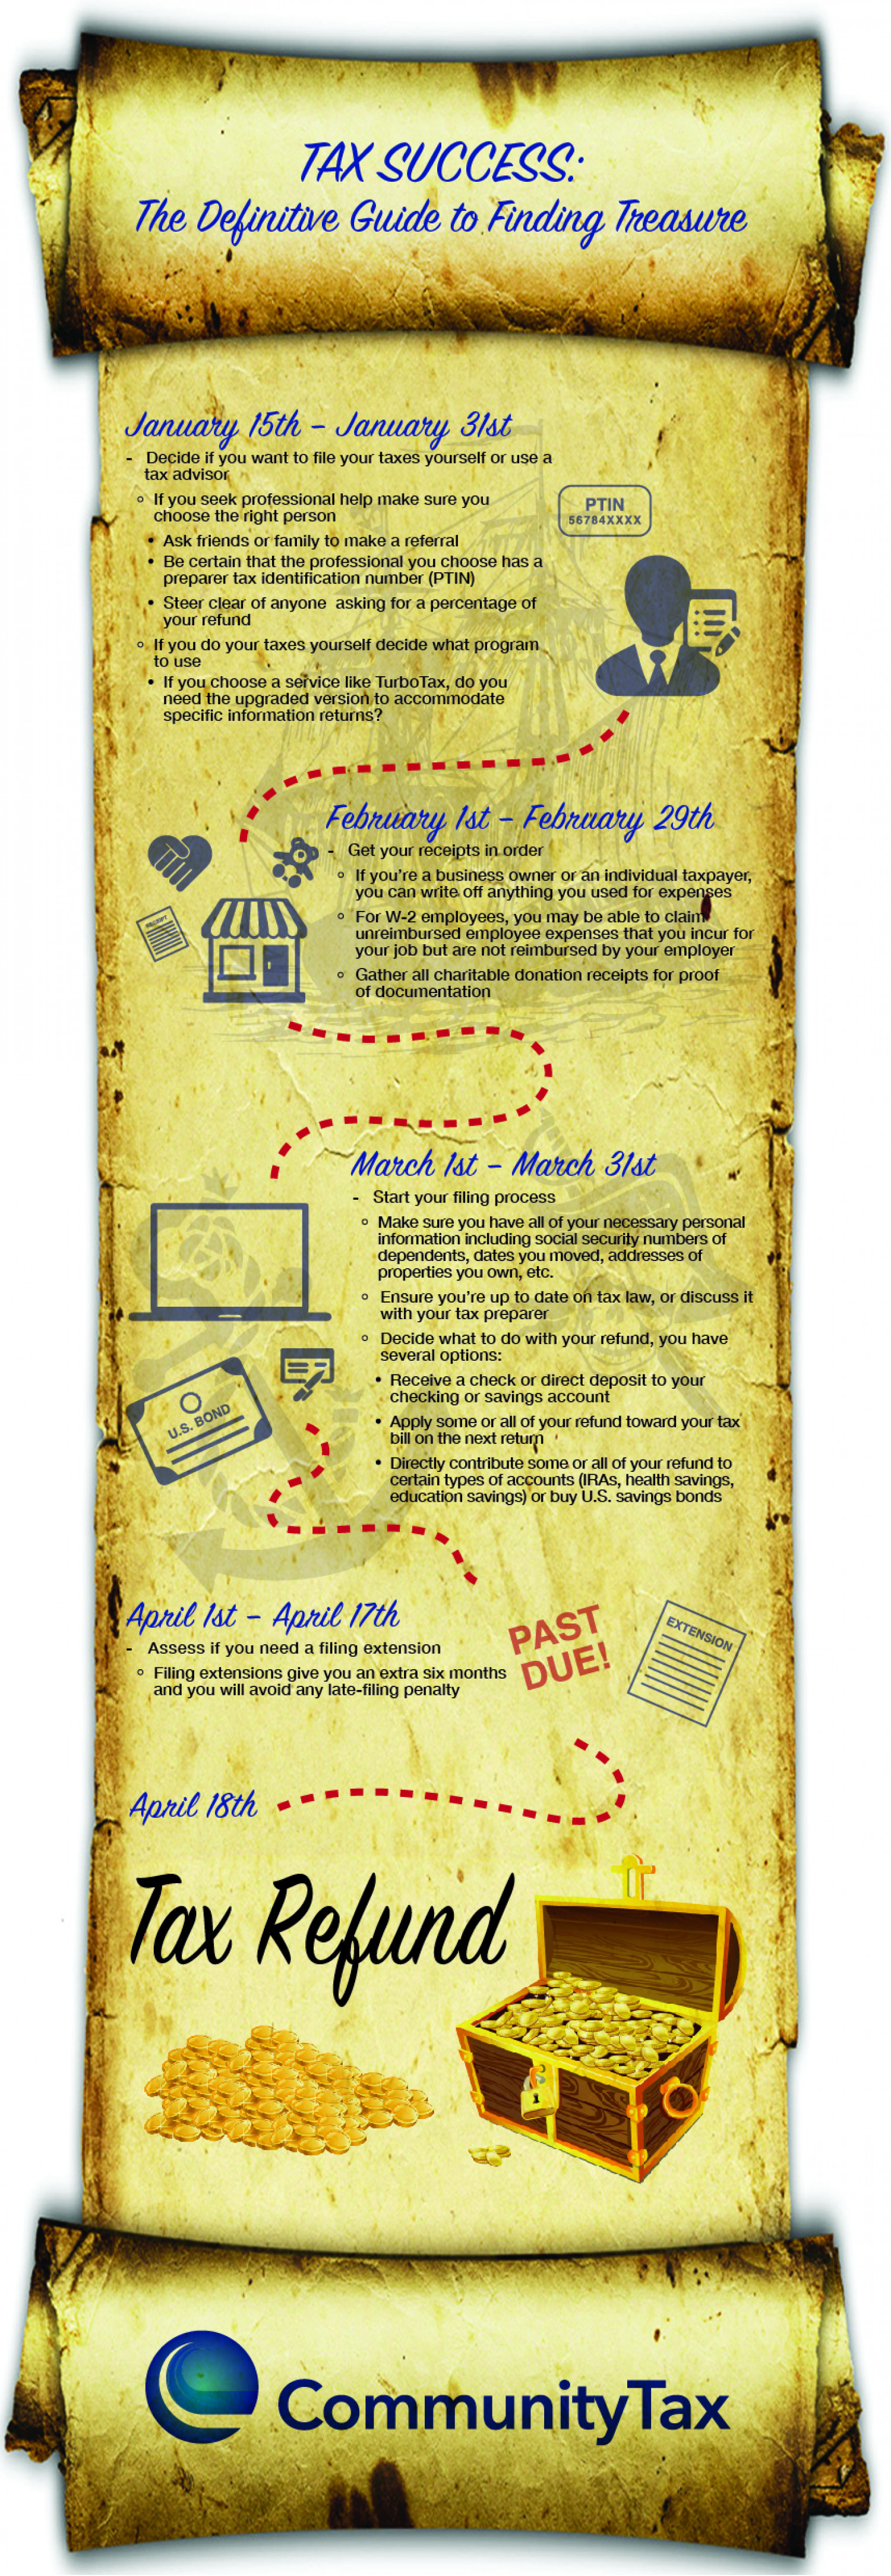 Treasure Map to 2016 Tax Success Infographic